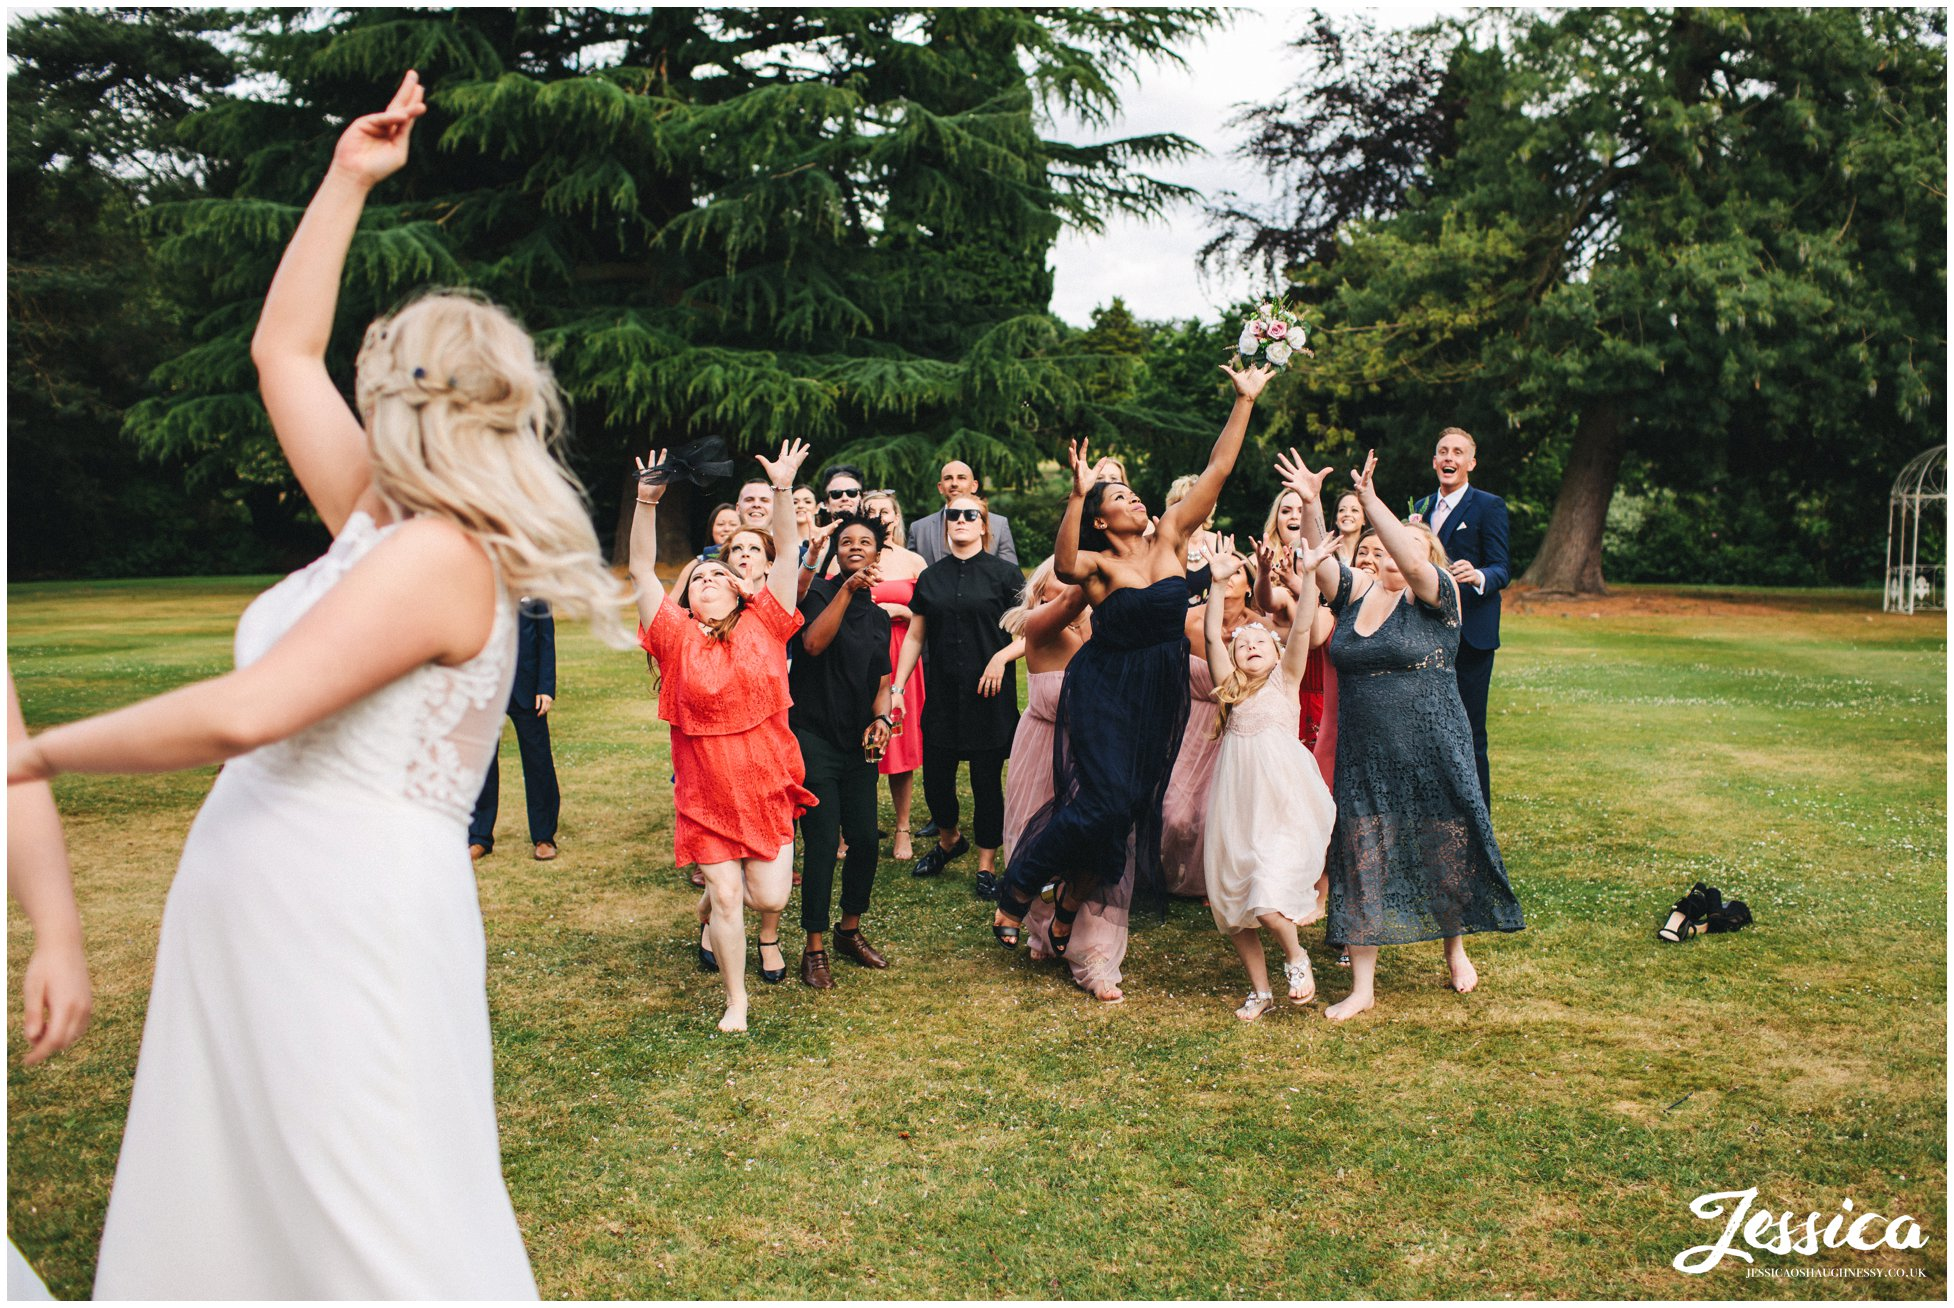 the brides throw their bouquets to their single wedding guests